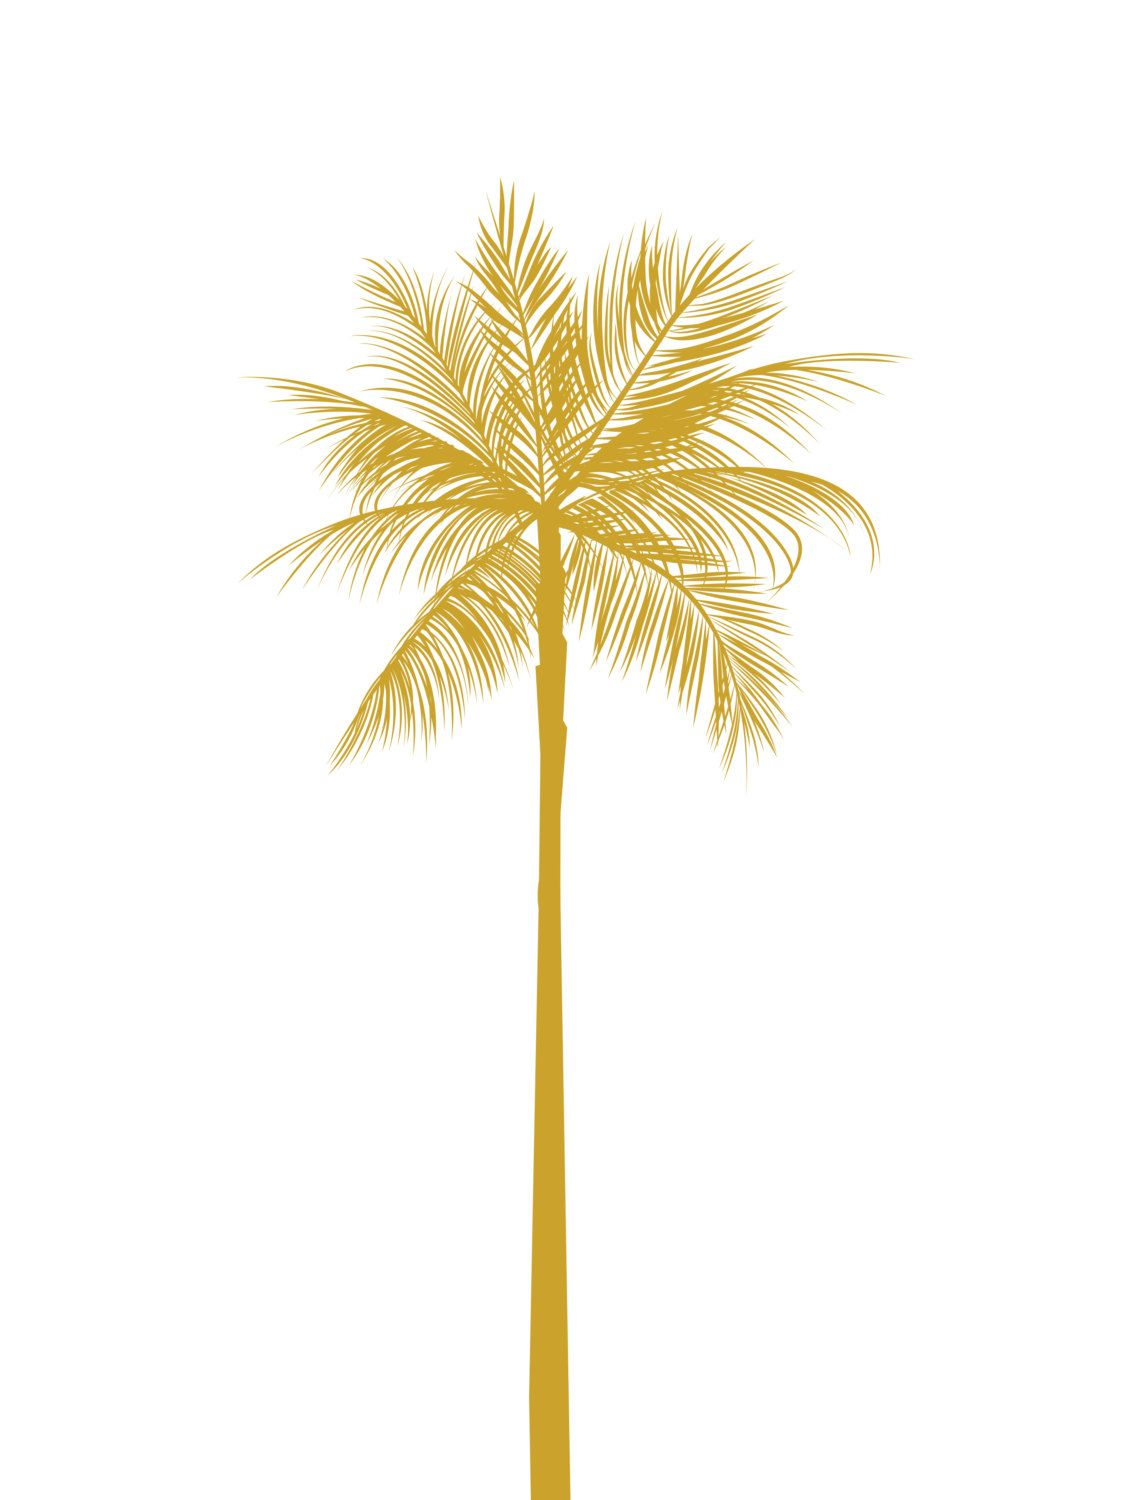 Gold Palm Tree Print, California Palm Tree, Mustard Yellow Palm Tree ...